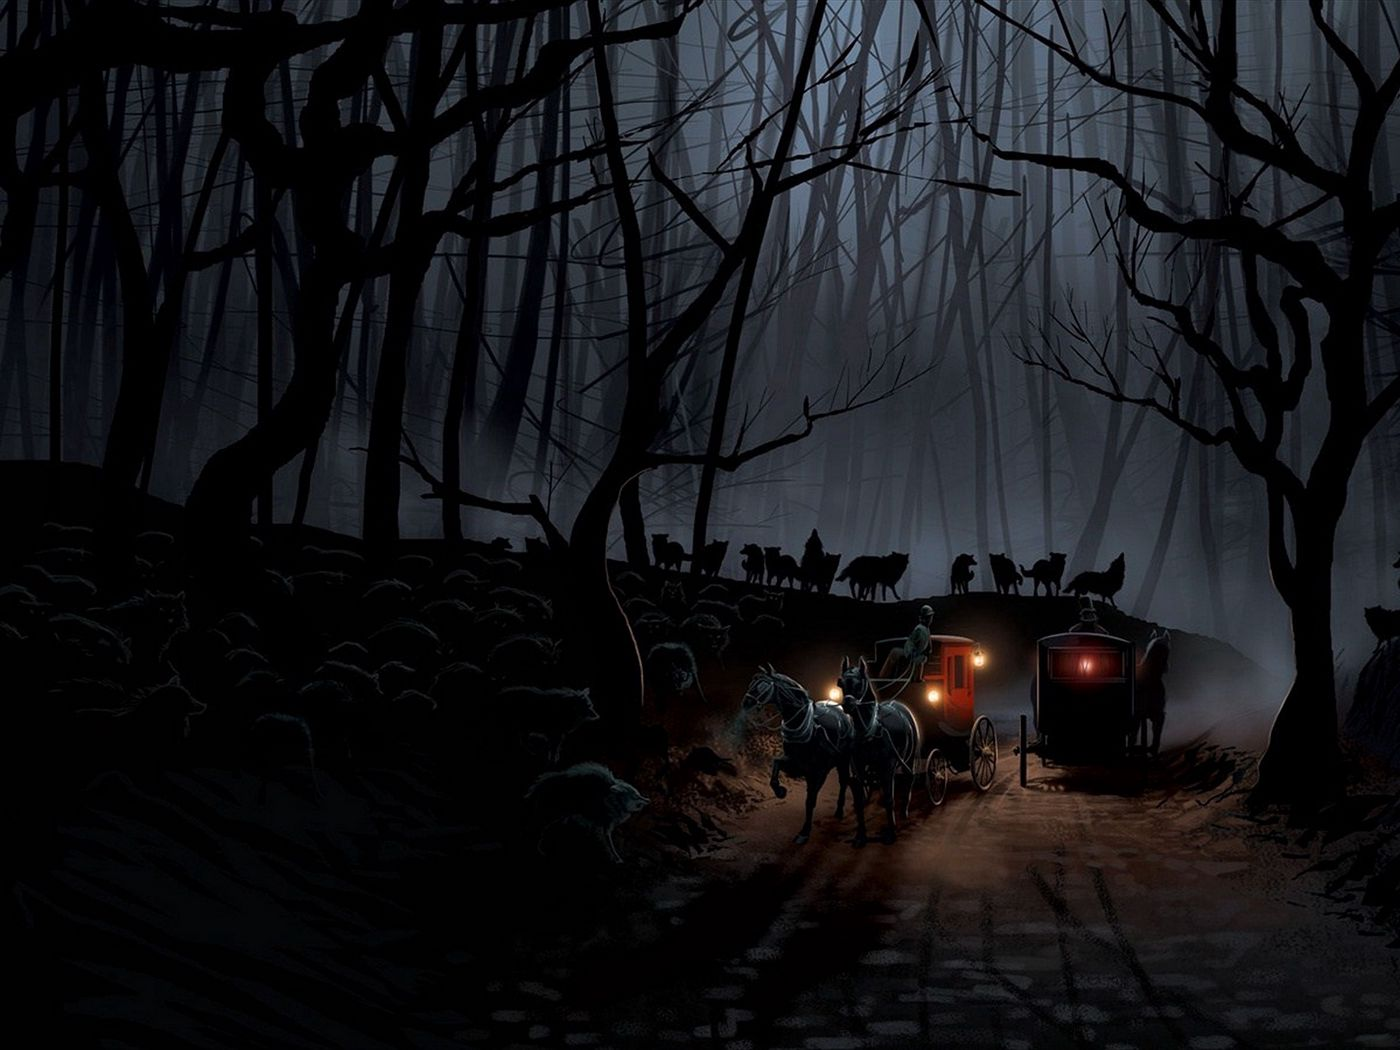 1400x1050 Wallpaper carriage, wood, night, wolves, flight